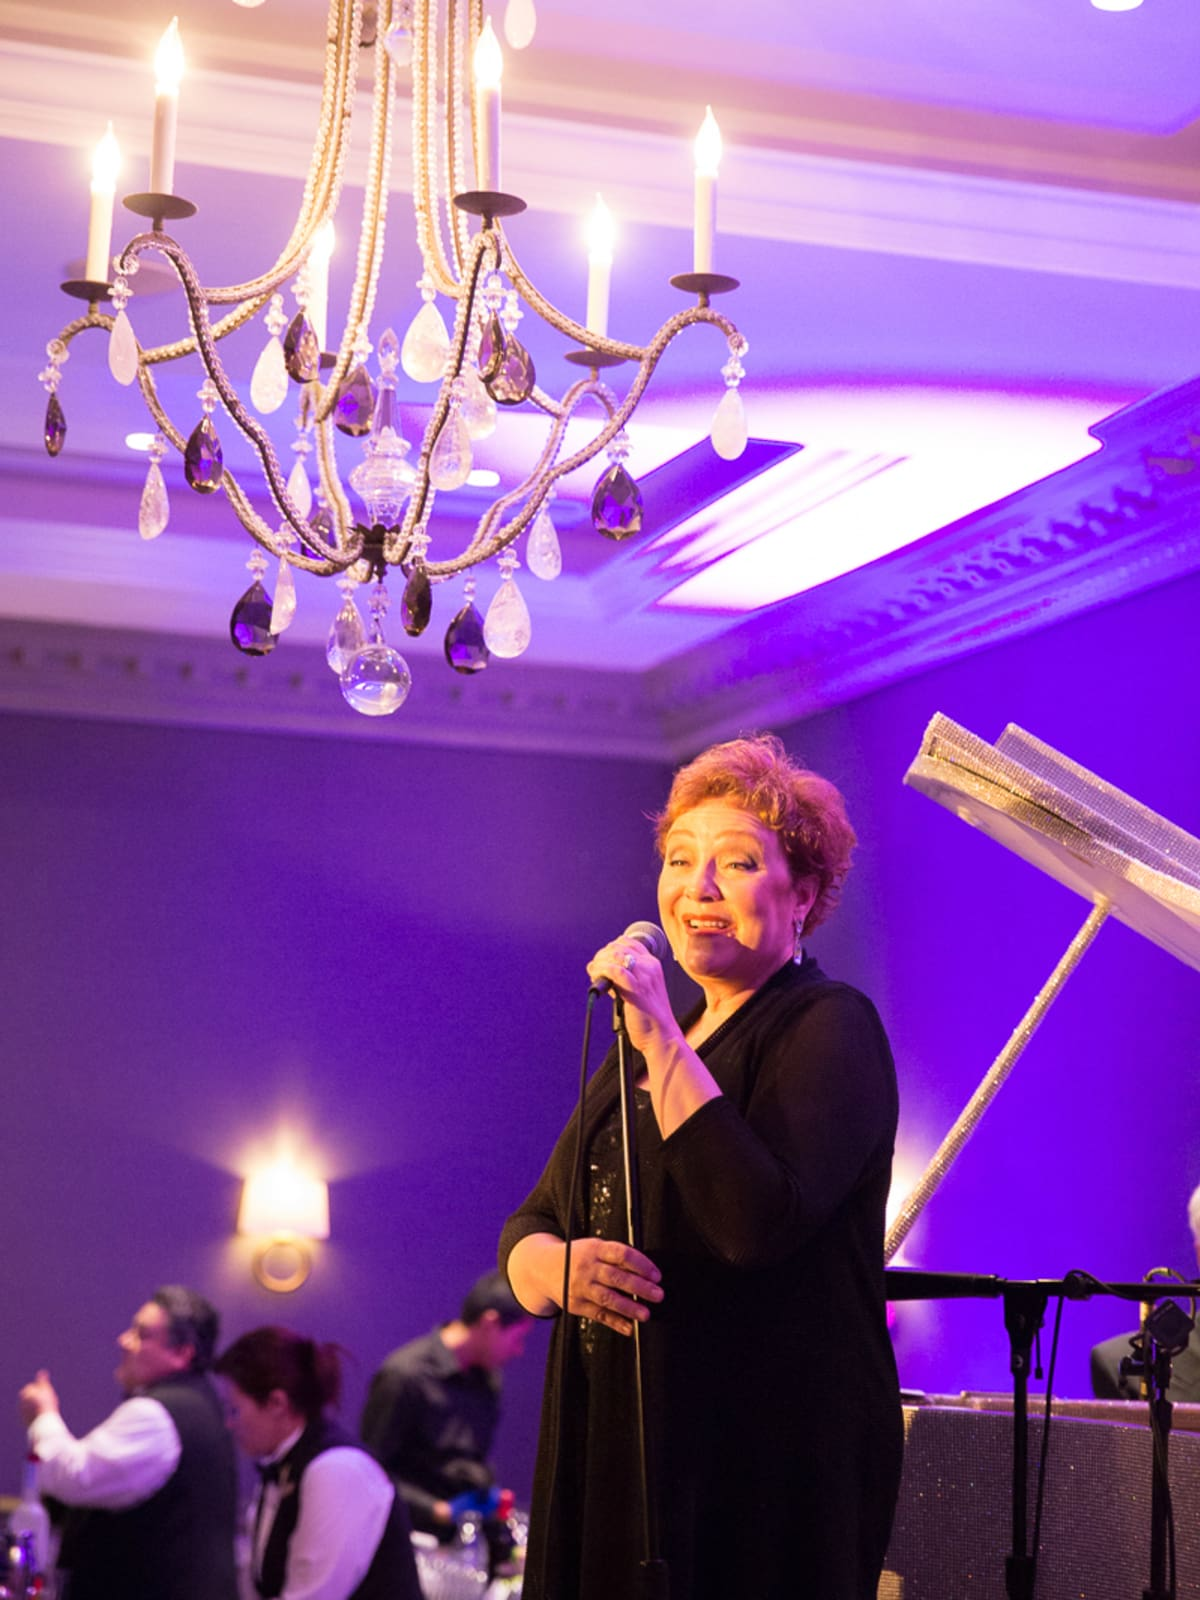 The Saint Anthony Hotel San Antonio Grand Reopening 2015 Sharon Montgomery singer